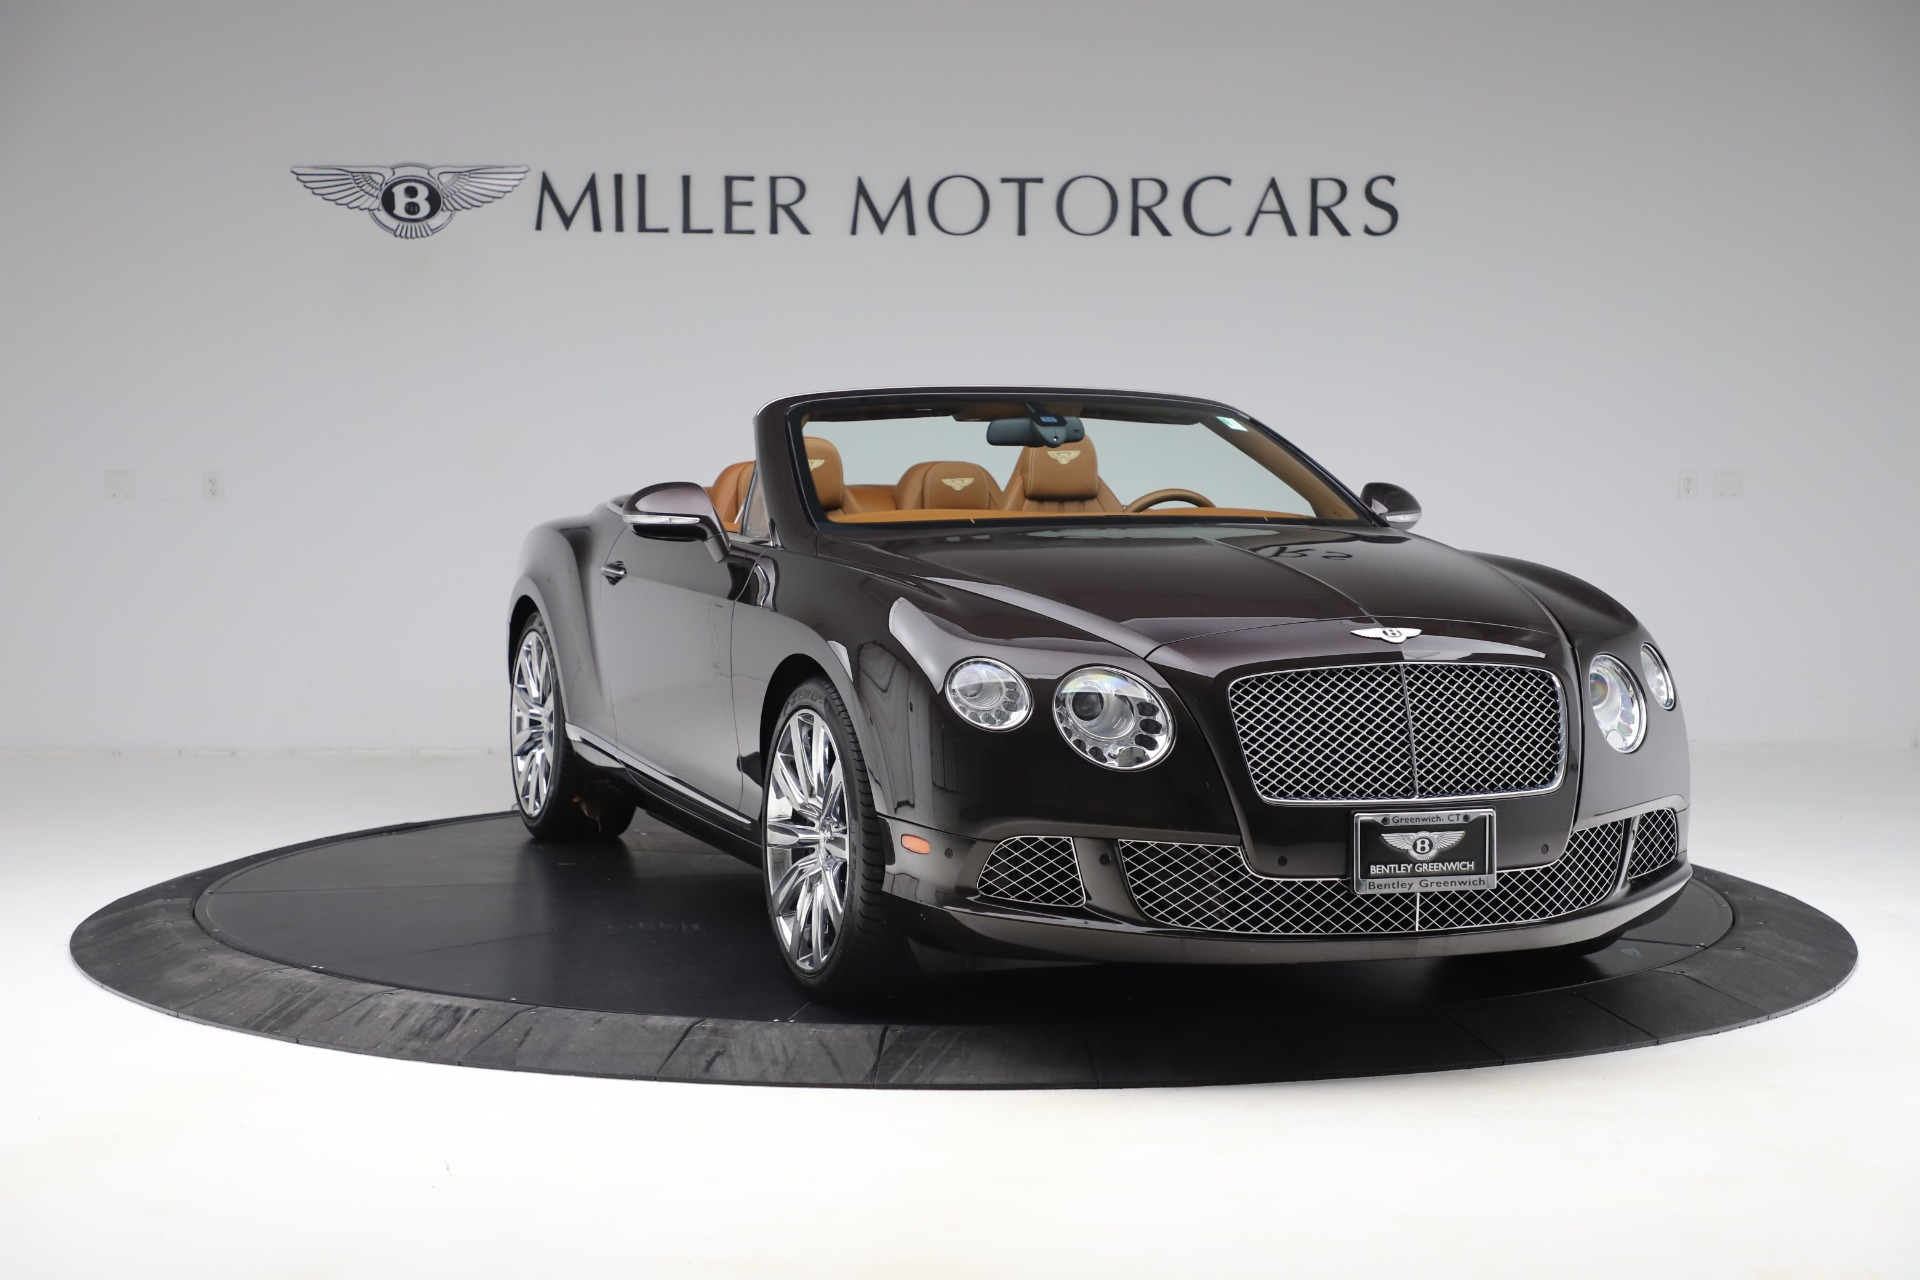 Used 2013 Bentley Continental GT W12 For Sale In Greenwich, CT 3505_p11